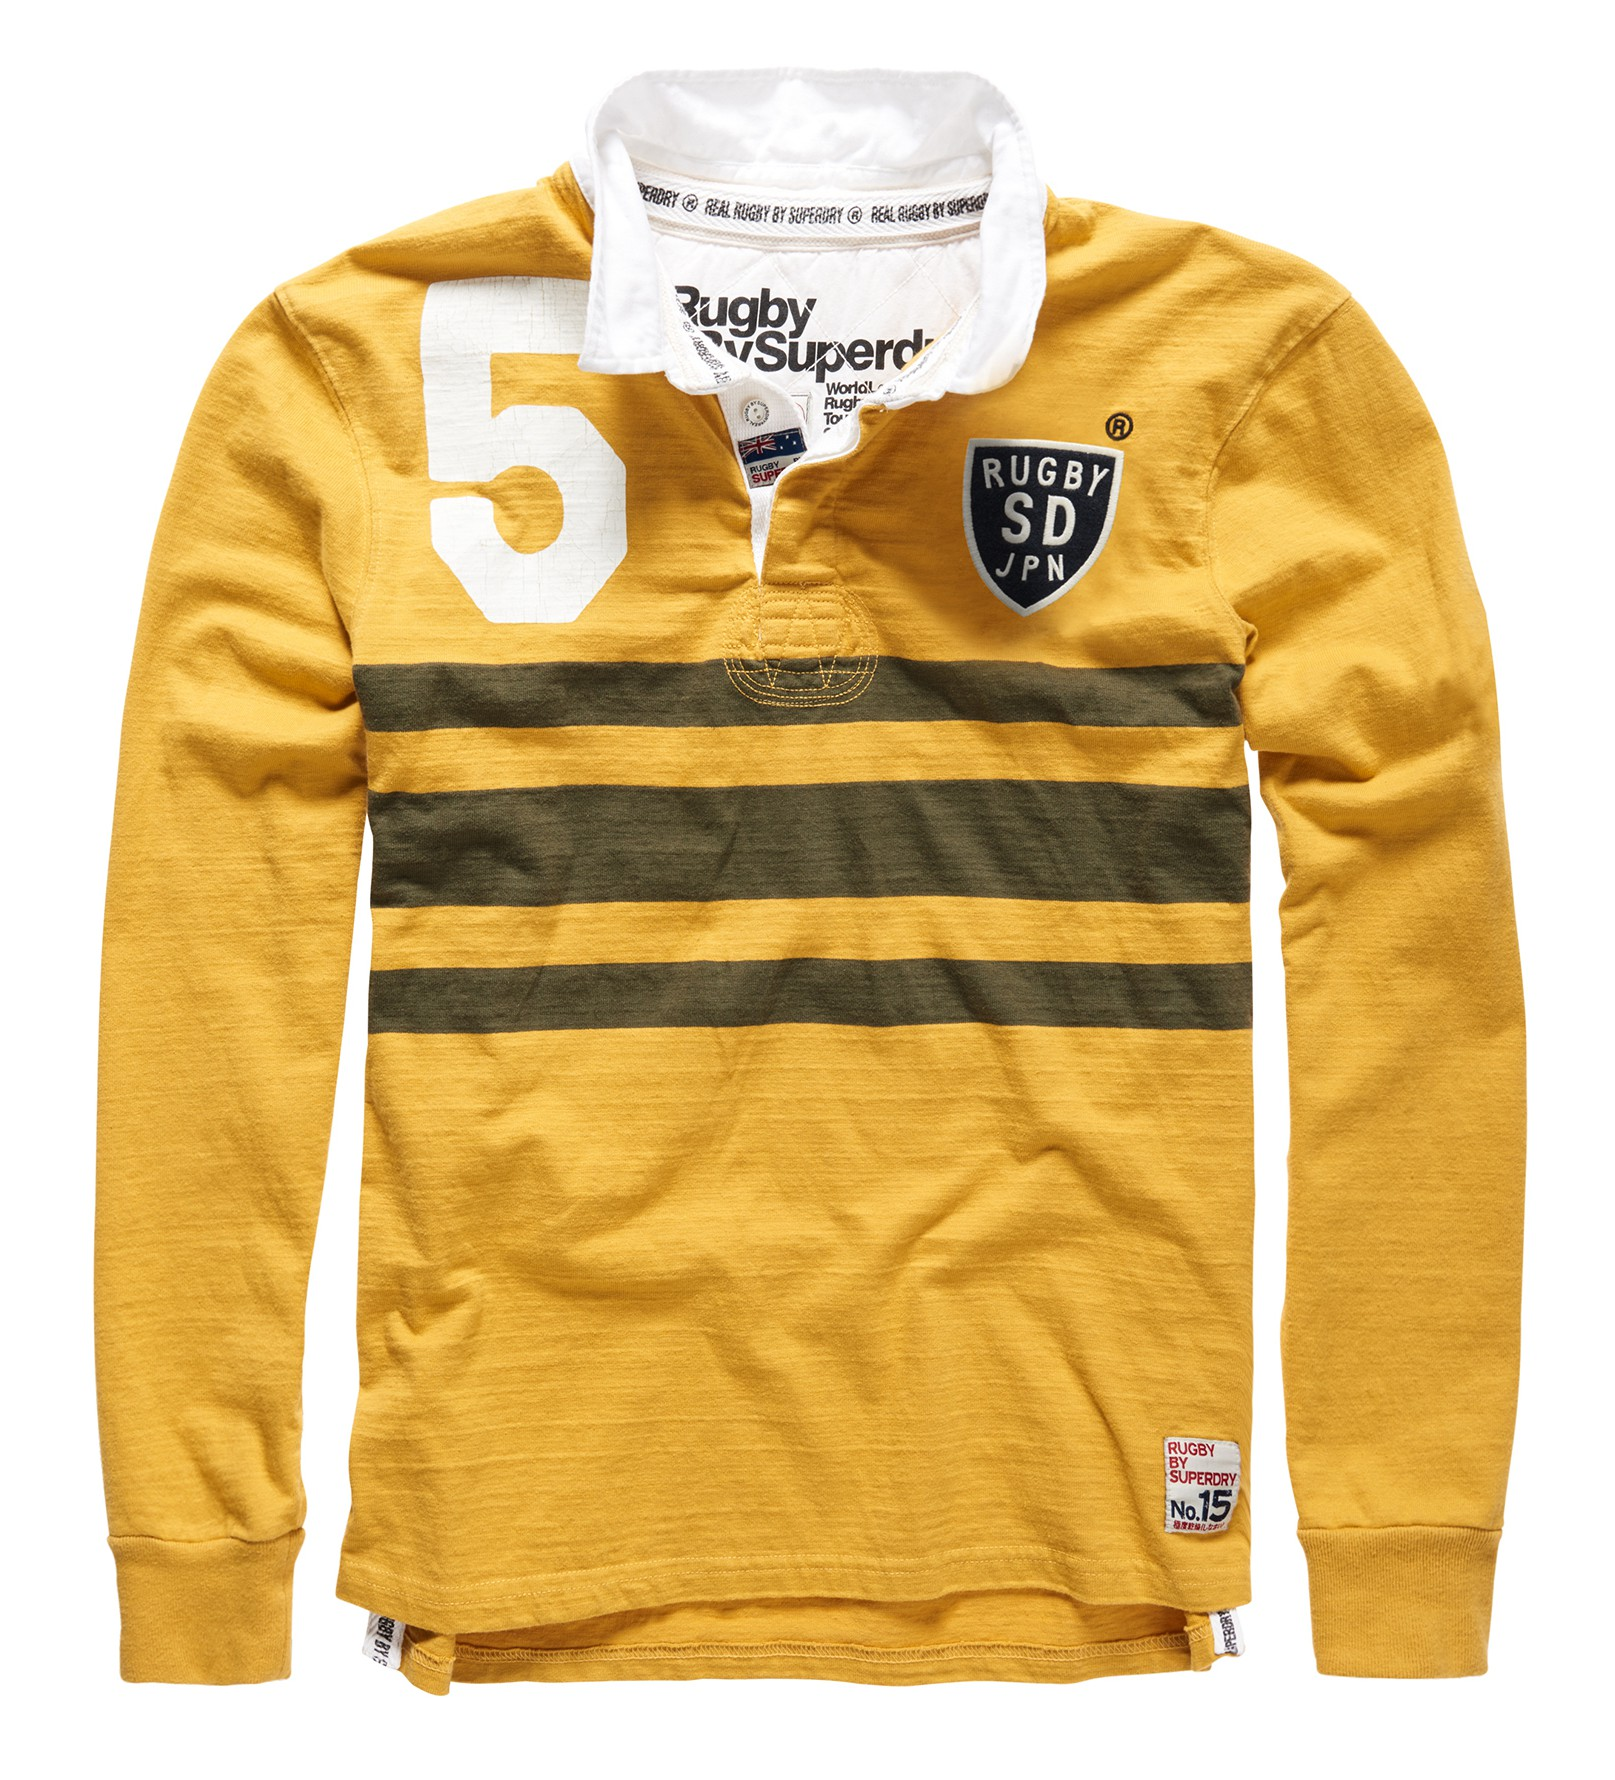 Stash 'N' Grab: Superdry World Legends Rugby Shirts